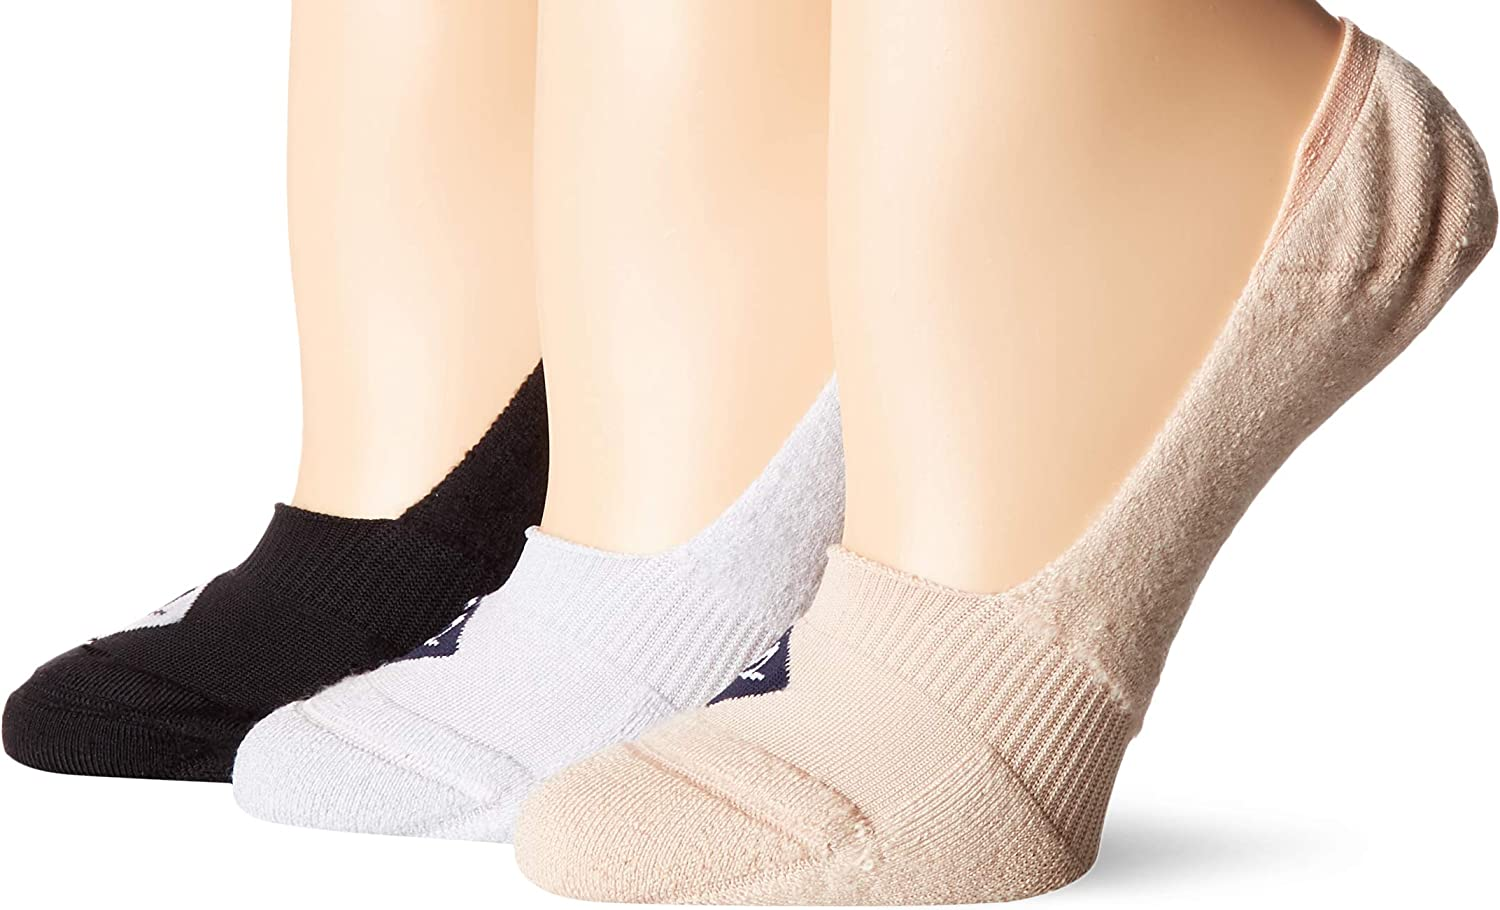 Sperry Women's 3 Pack Microfiber Cushion No Show Liner Socks, Black Assorted, Shoe Size: 5-10